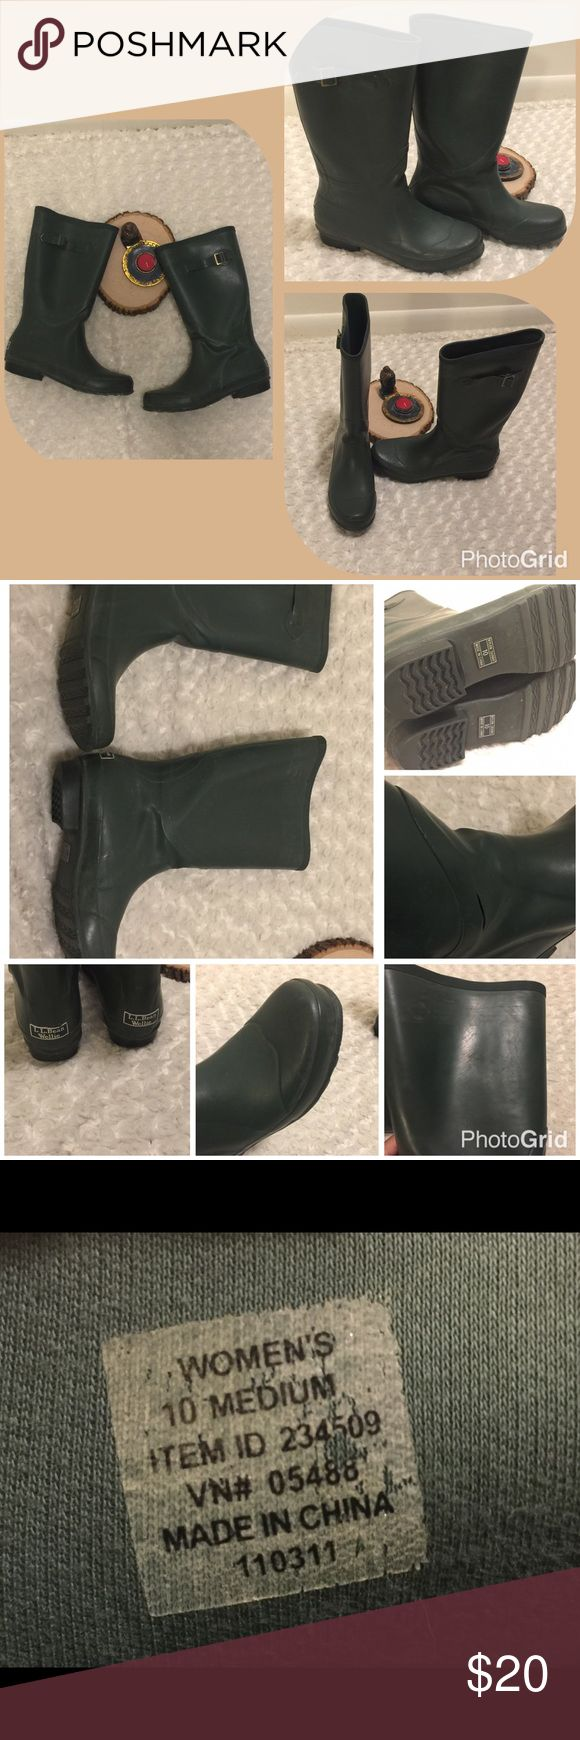 L.L. Bean Wellie Rain Boots Army Green SZ 10 These super cute and durable rain boots are pre-owned and gently used with some wear (please see photos). The right boot also has a small surface hole in the rubber (please see photos), but the function of the boot is not disturbed. Size 10 medium. Color: Green. L.L. Bean Shoes Winter & Rain Boots